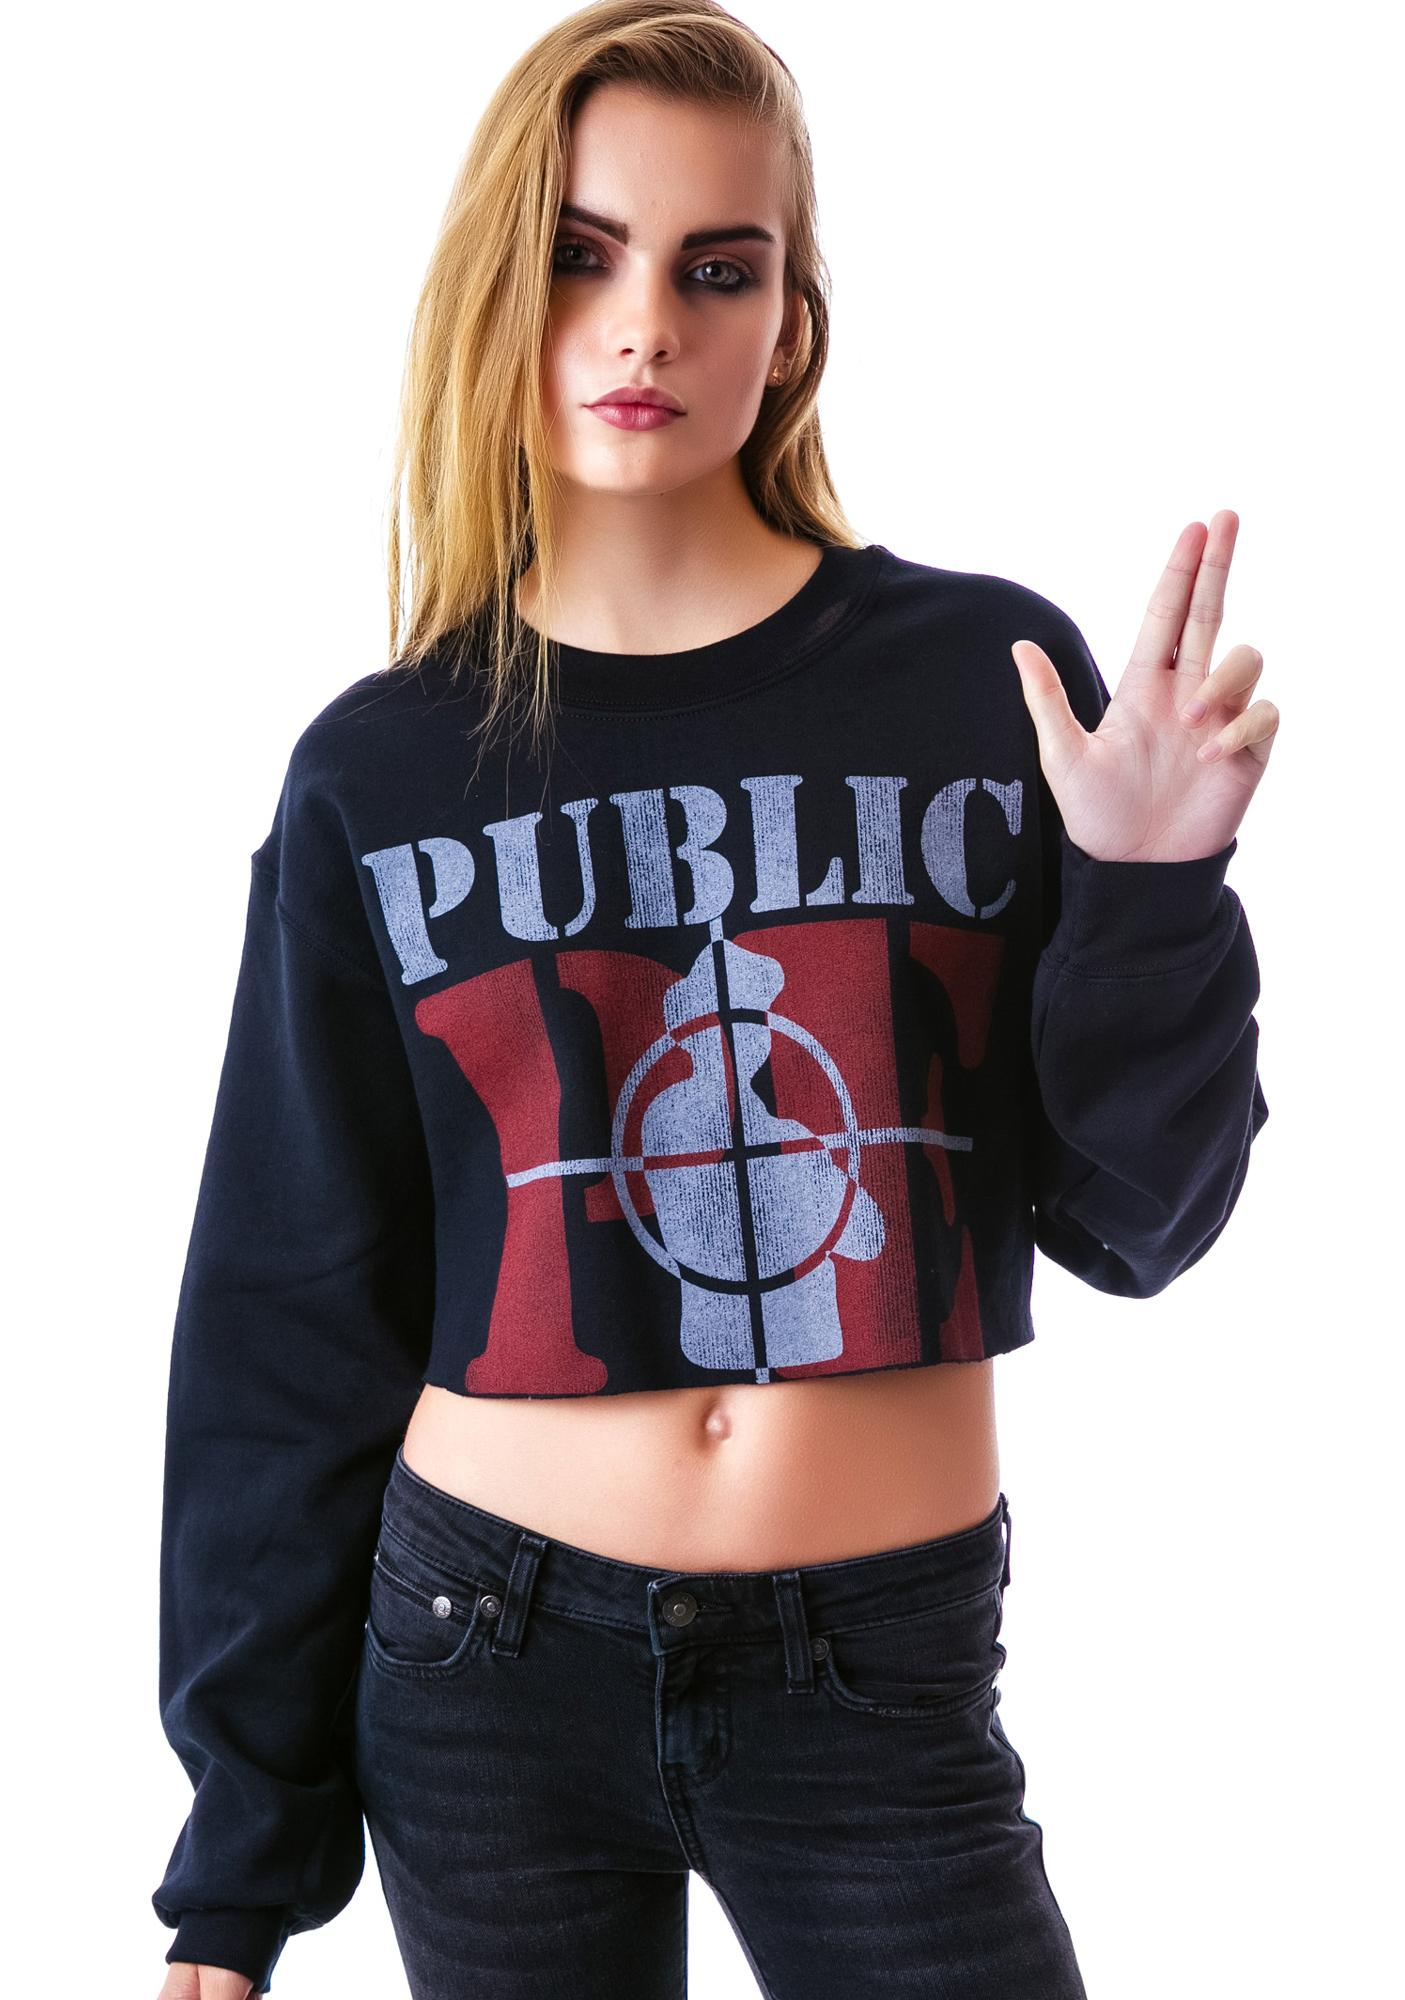 Public Enemy Cropped Sweatshirt